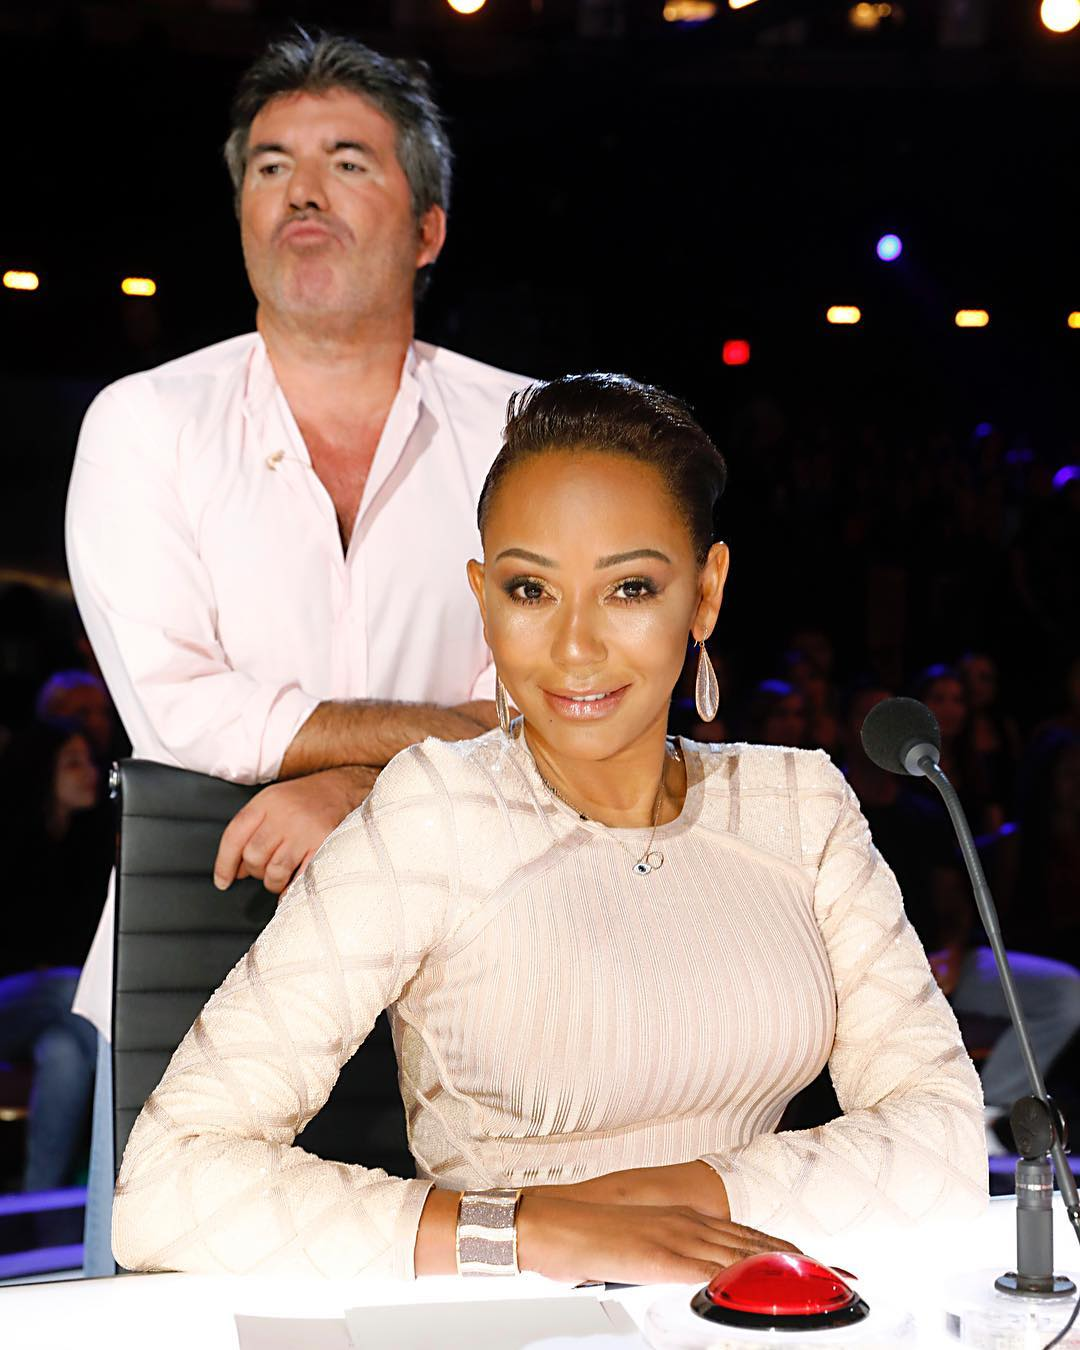 mel b - Why bad boys are no good! Here are celebrities who got burnt